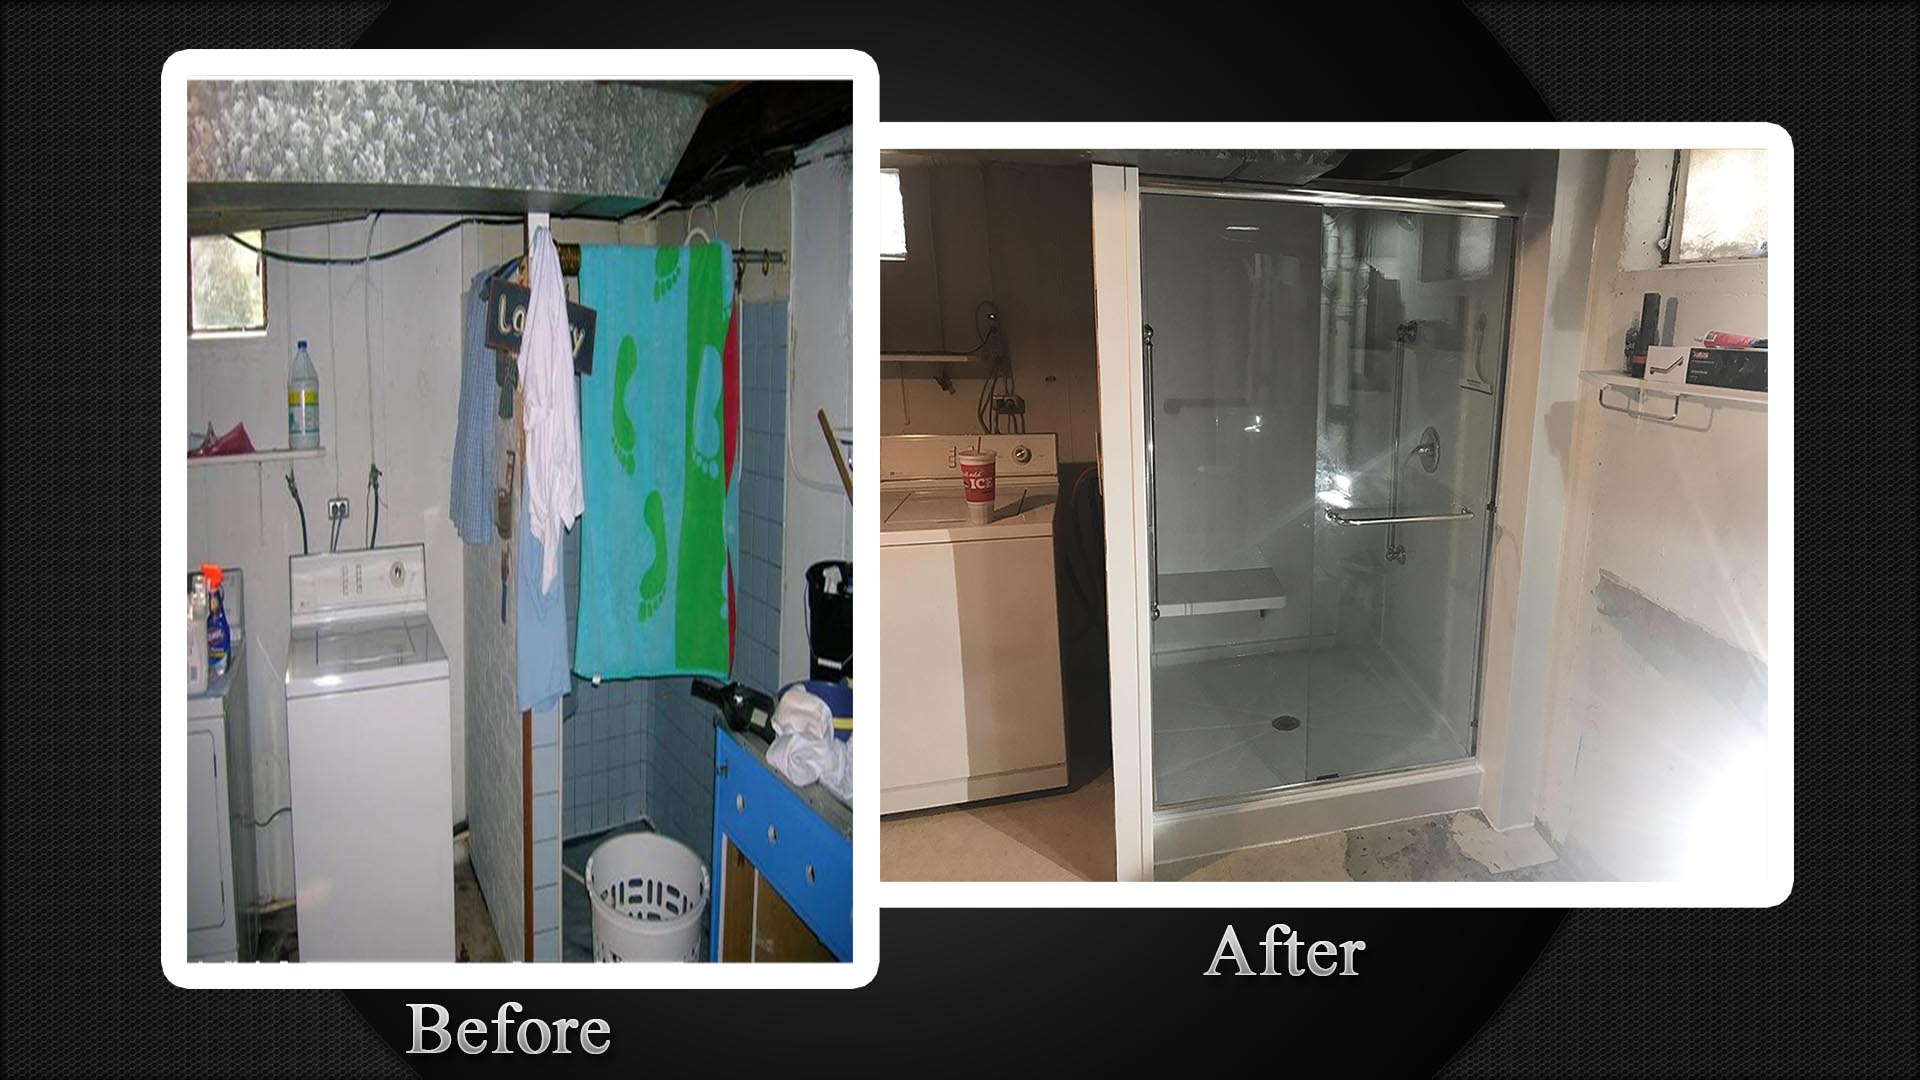 Joliet Bathroom Remodel - Prime Baths and Home Solutions - Before and After #2